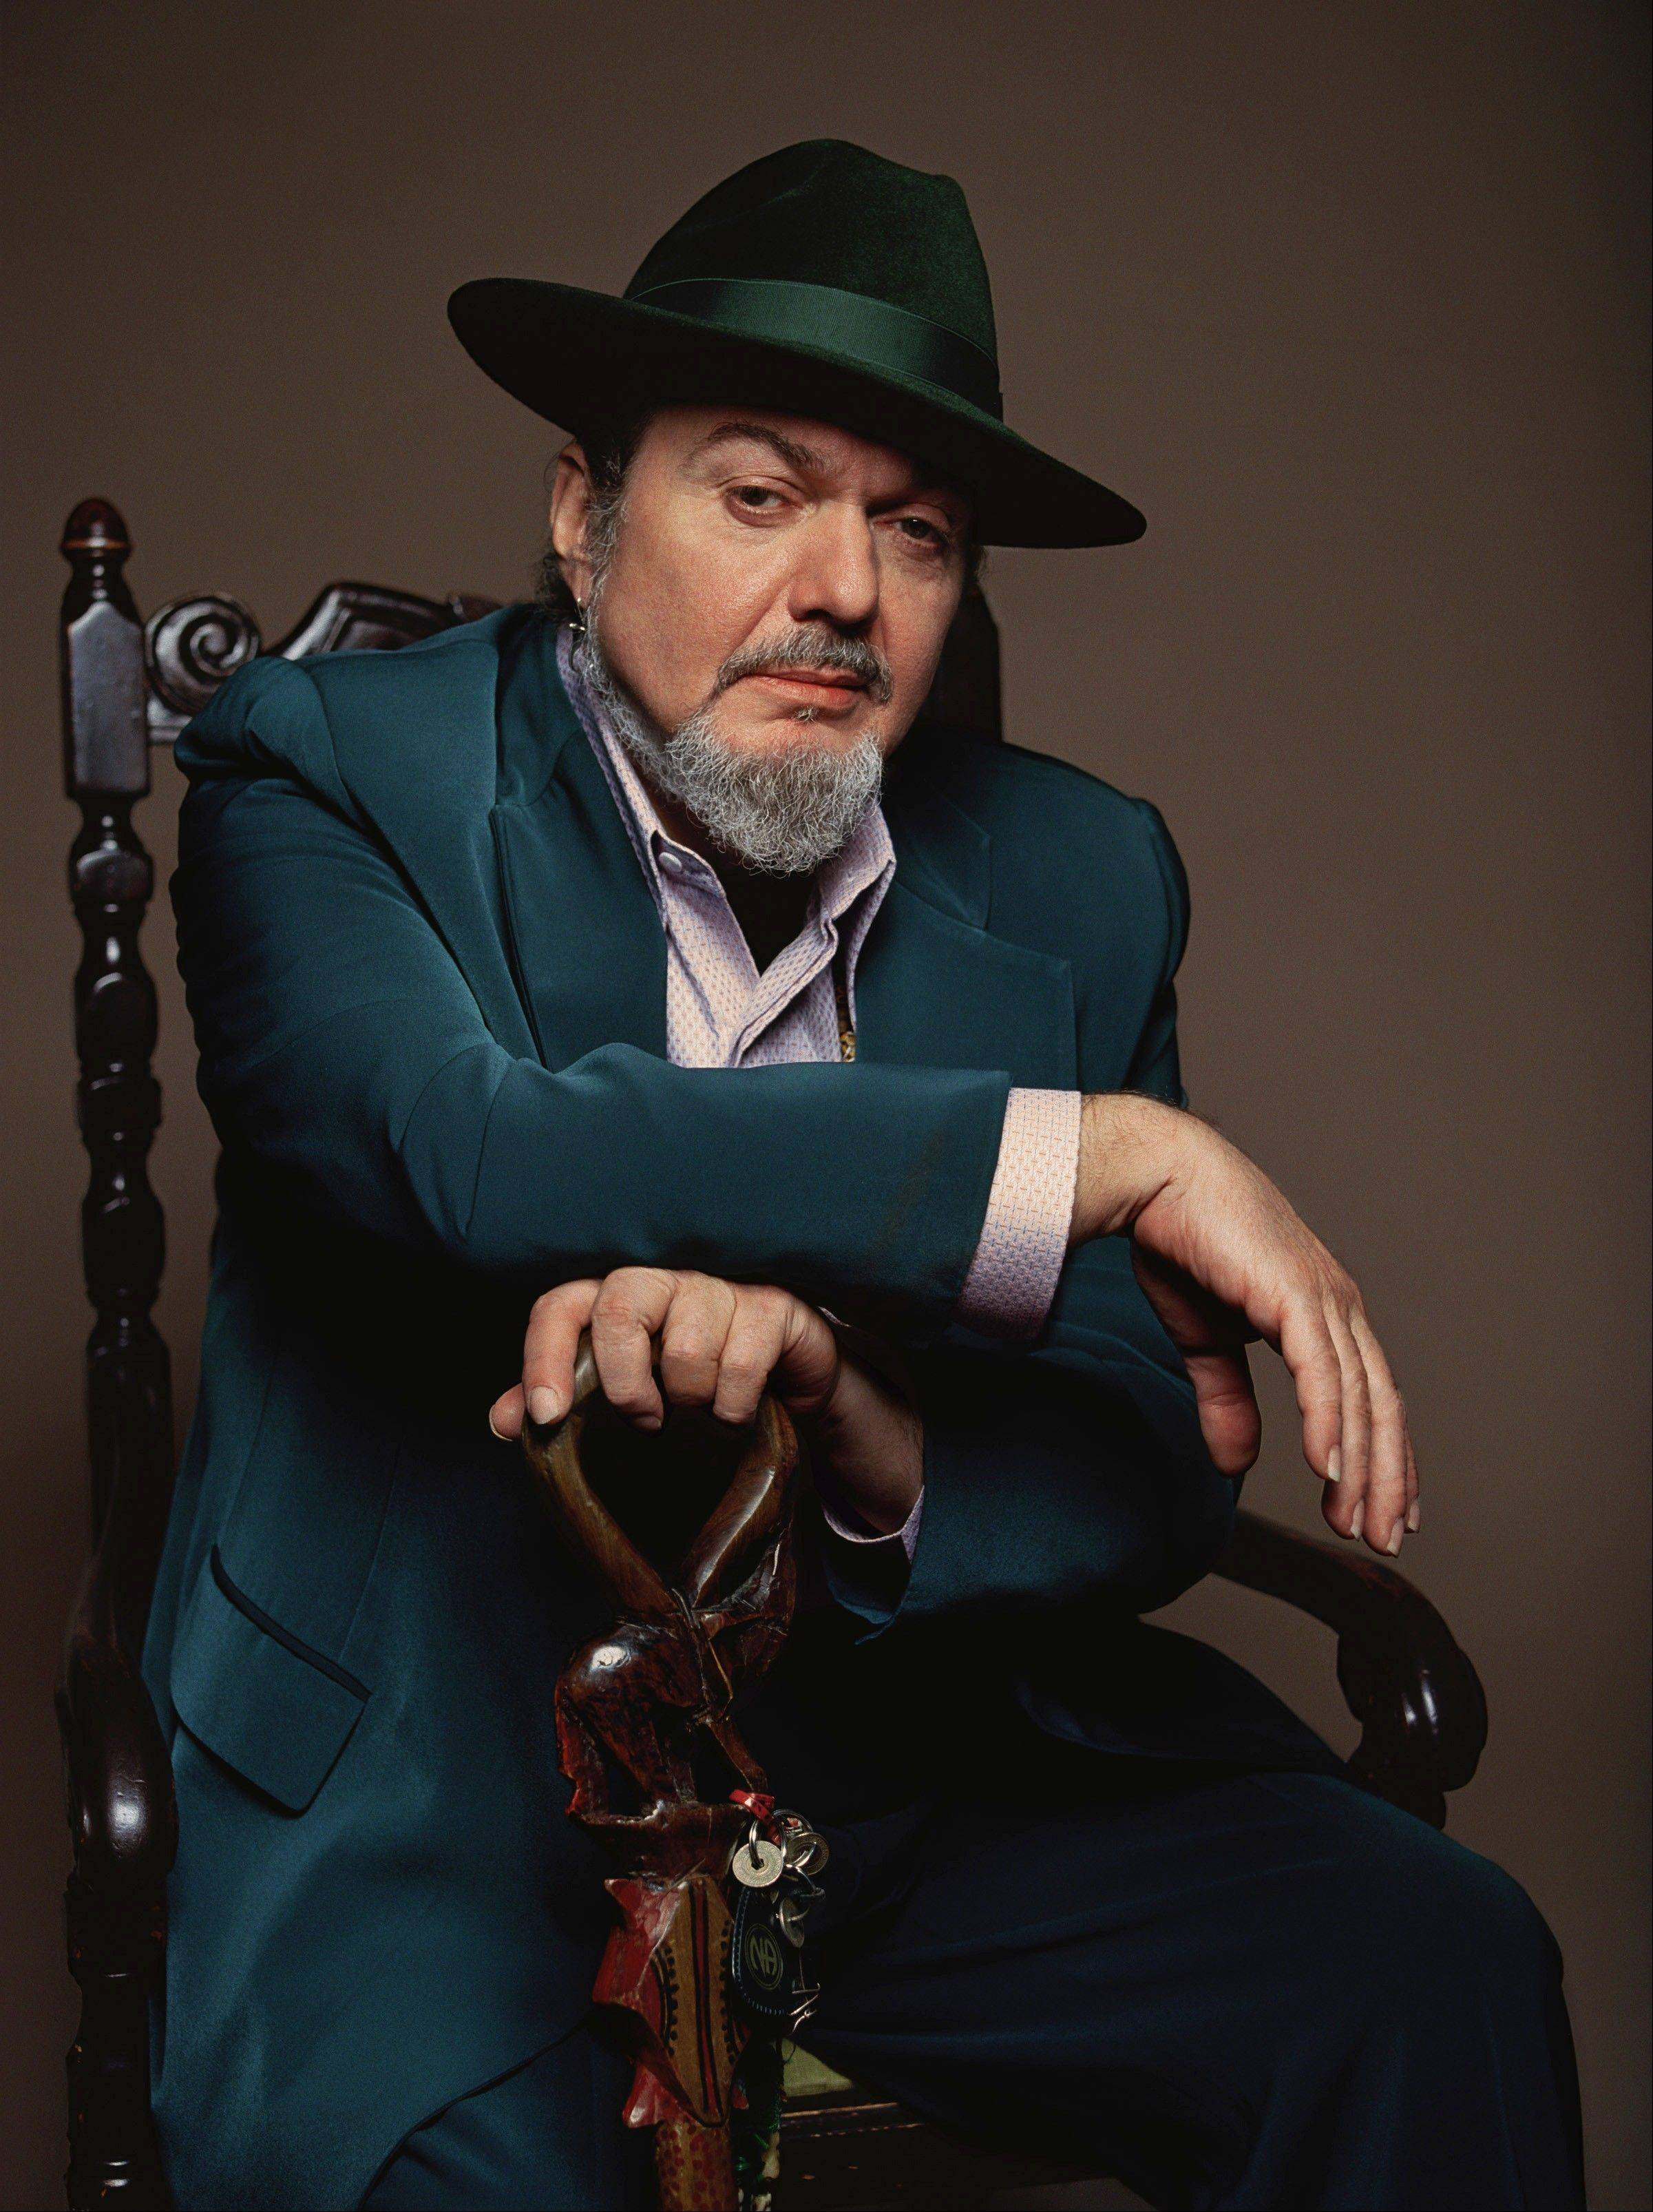 Dr. John will perform Friday, June 14, at this year's Blues on the Fox at the RiverEdge Park Music Garden in Aurora.